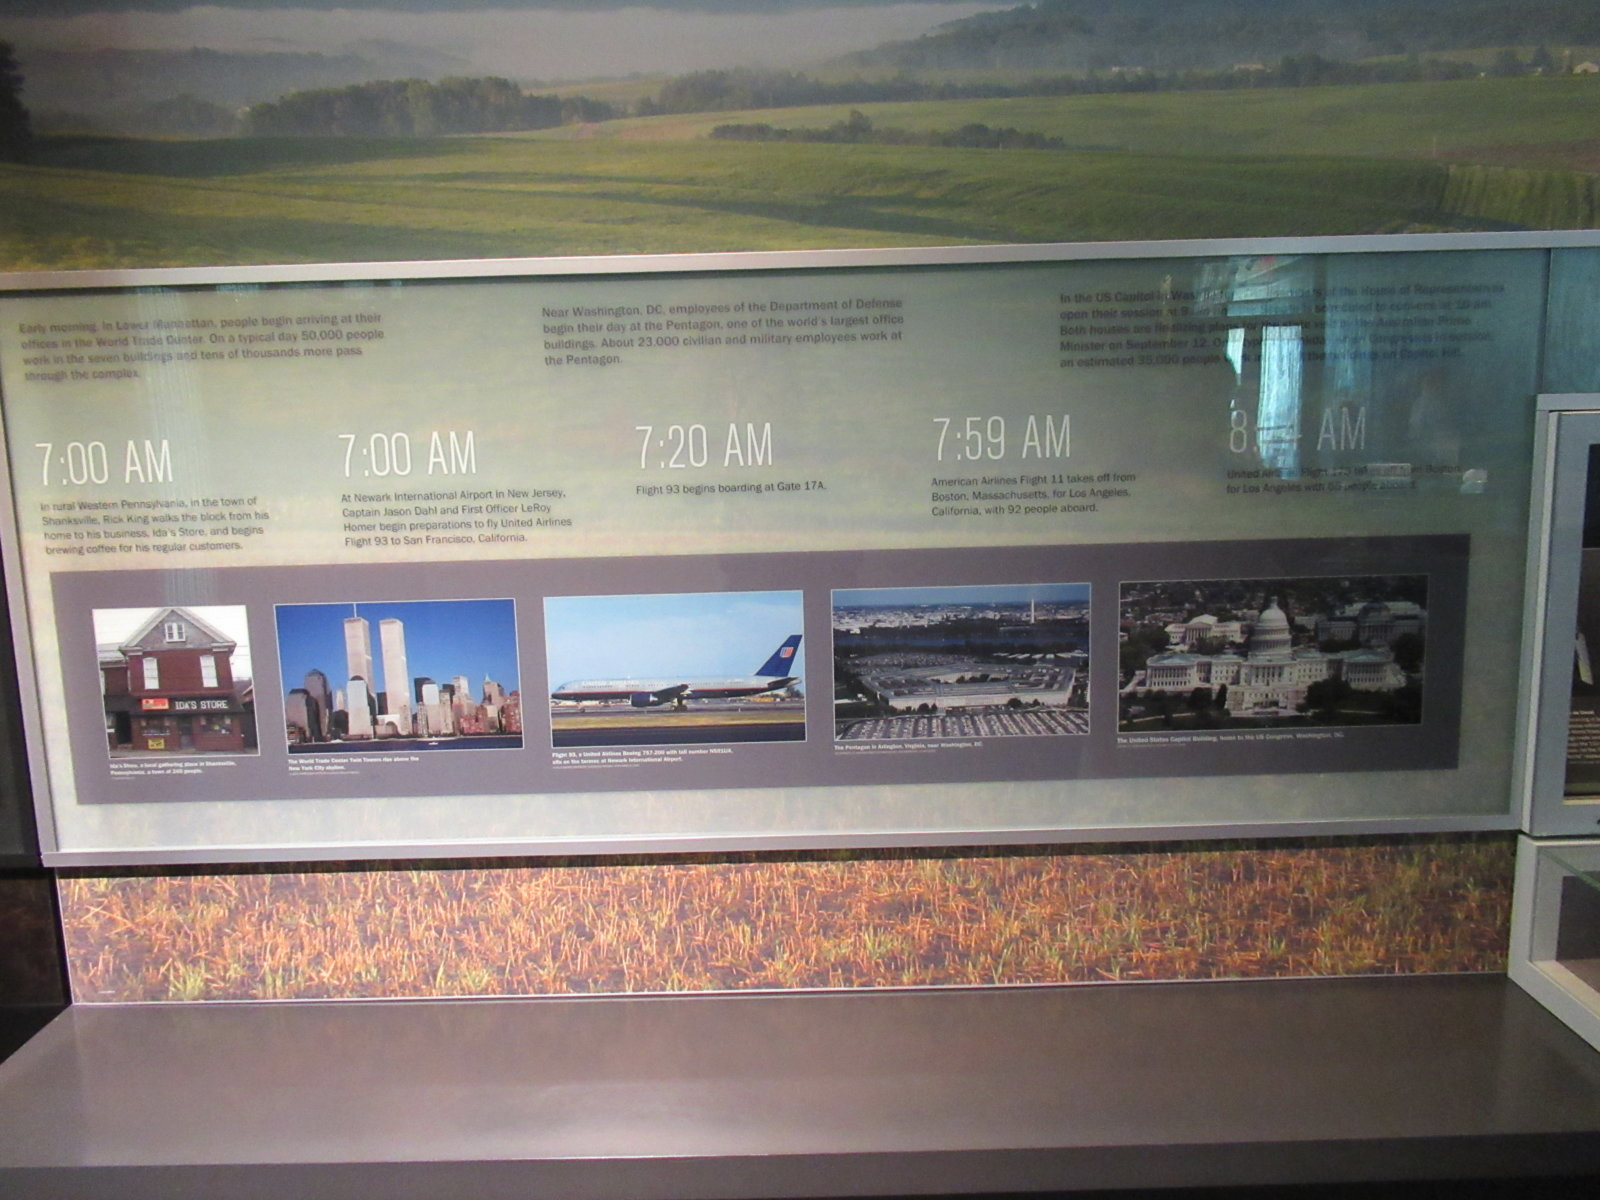 07-13 Flight 93 The Timeline